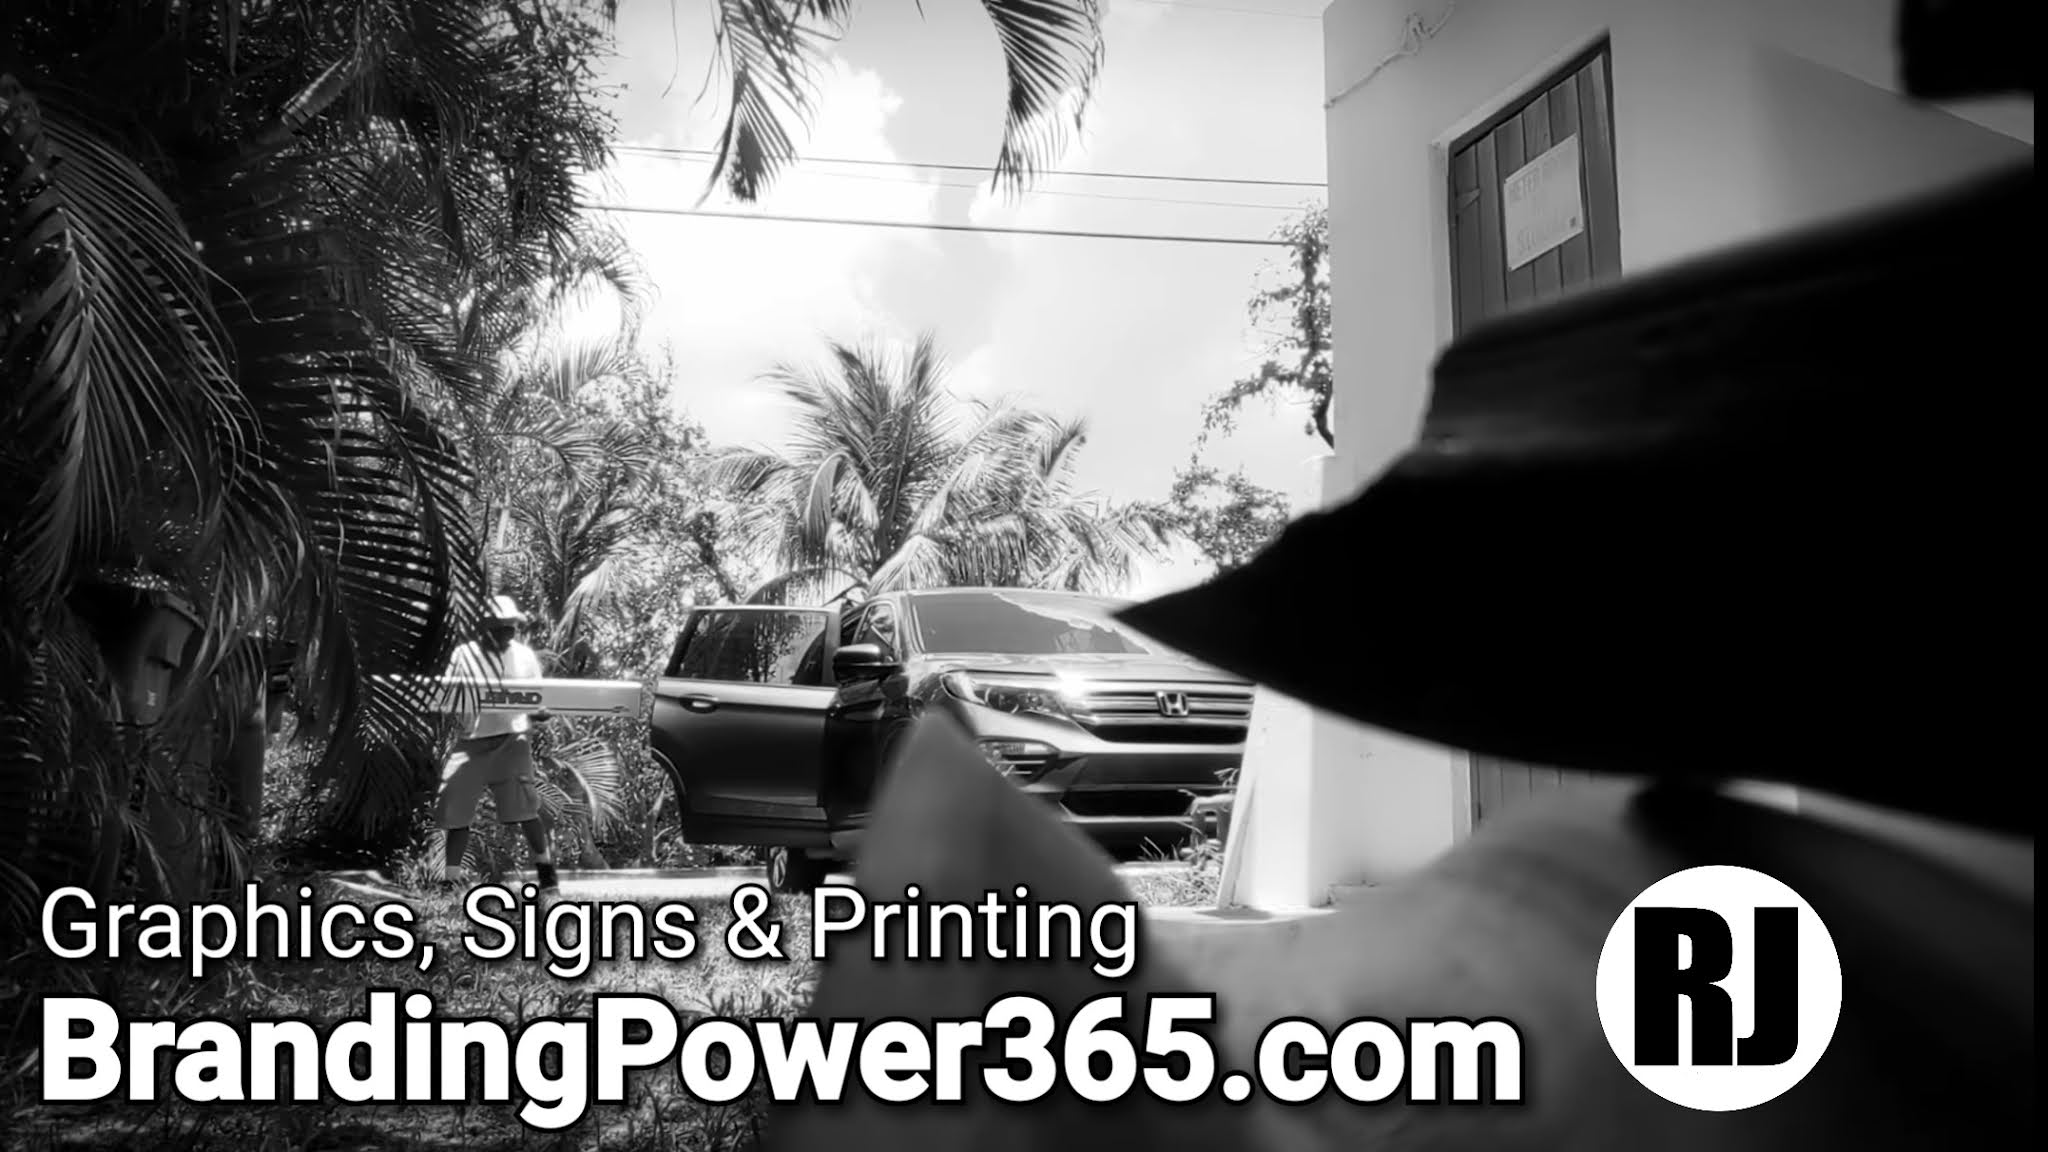 The Printing Process 30: Full ORAFOL Vinyl for Wraps, Stickers and Signs Delivered to Sign Shop. (BrandingPower365.com)